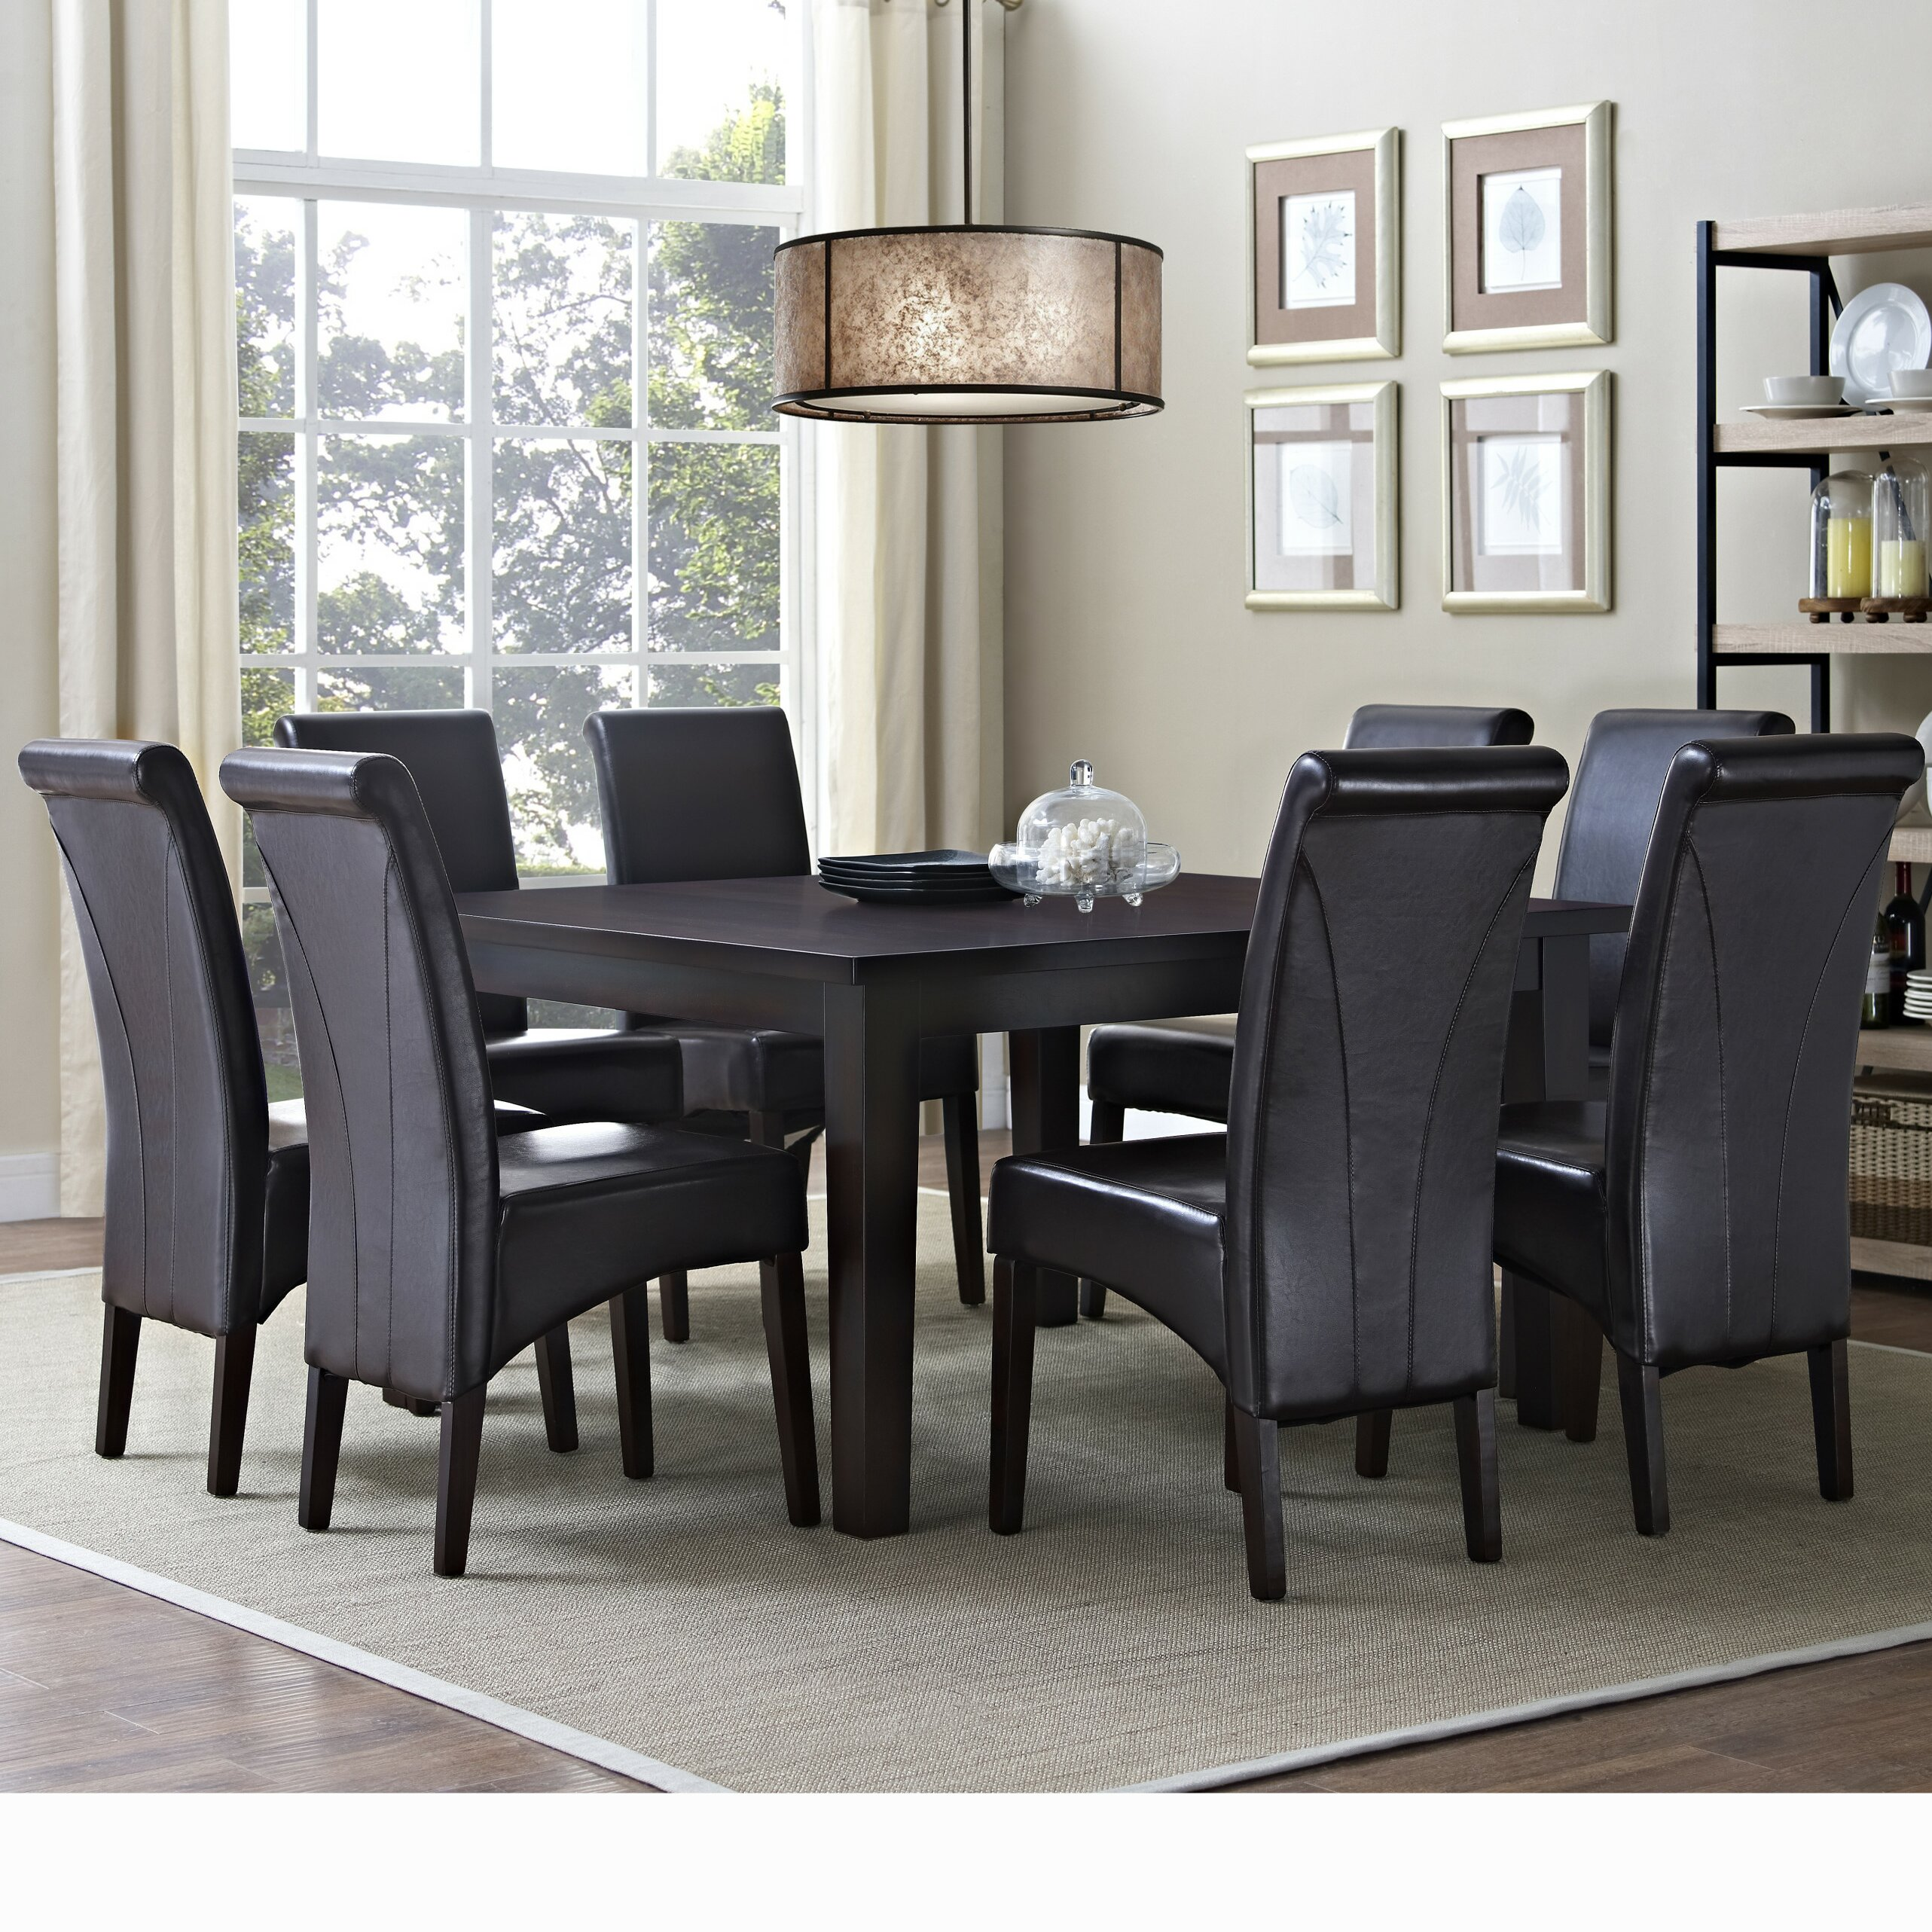 avalon 9 piece dining set by simpli home